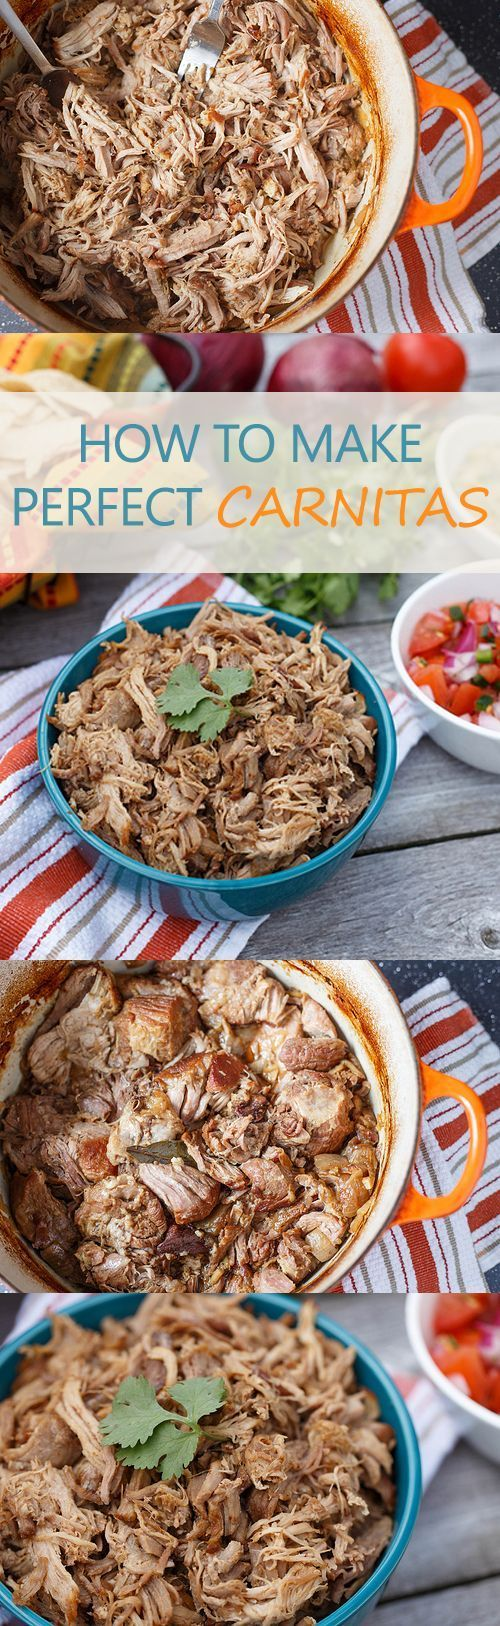 HOW TO MAKE PERFECT CARNITAS - A easy way to make your cinco de mayo awesome. We love Mexican food recipes !!!!!